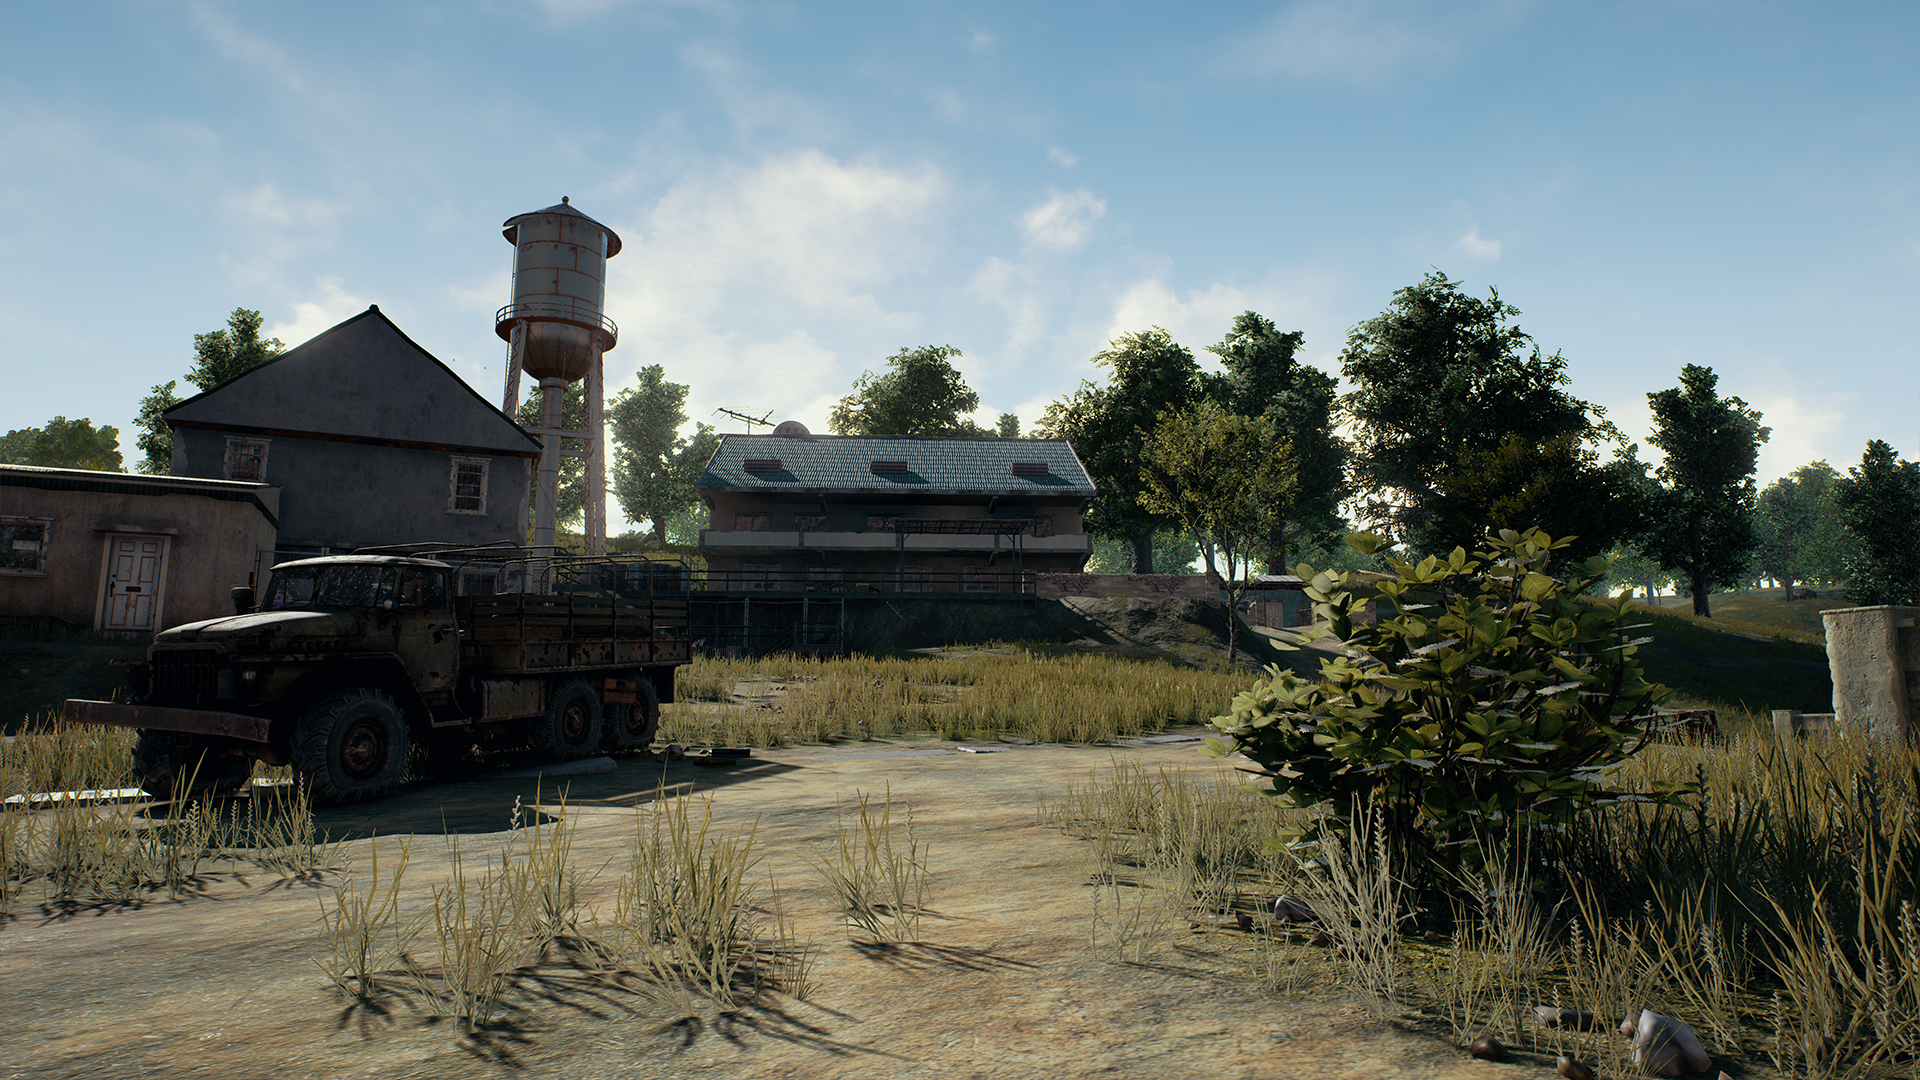 playerunknown s battlegrounds hd 04fc17 - Player Unknown's Battlegrounds (PUBG) 4K - Pubg wallpaper phone, pubg wallpaper iphone, pubg wallpaper 1920x1080 hd, pubg hd wallpapers, pubg 4k wallpapers, Player Unknown's Battlegrounds 4k wallpapers